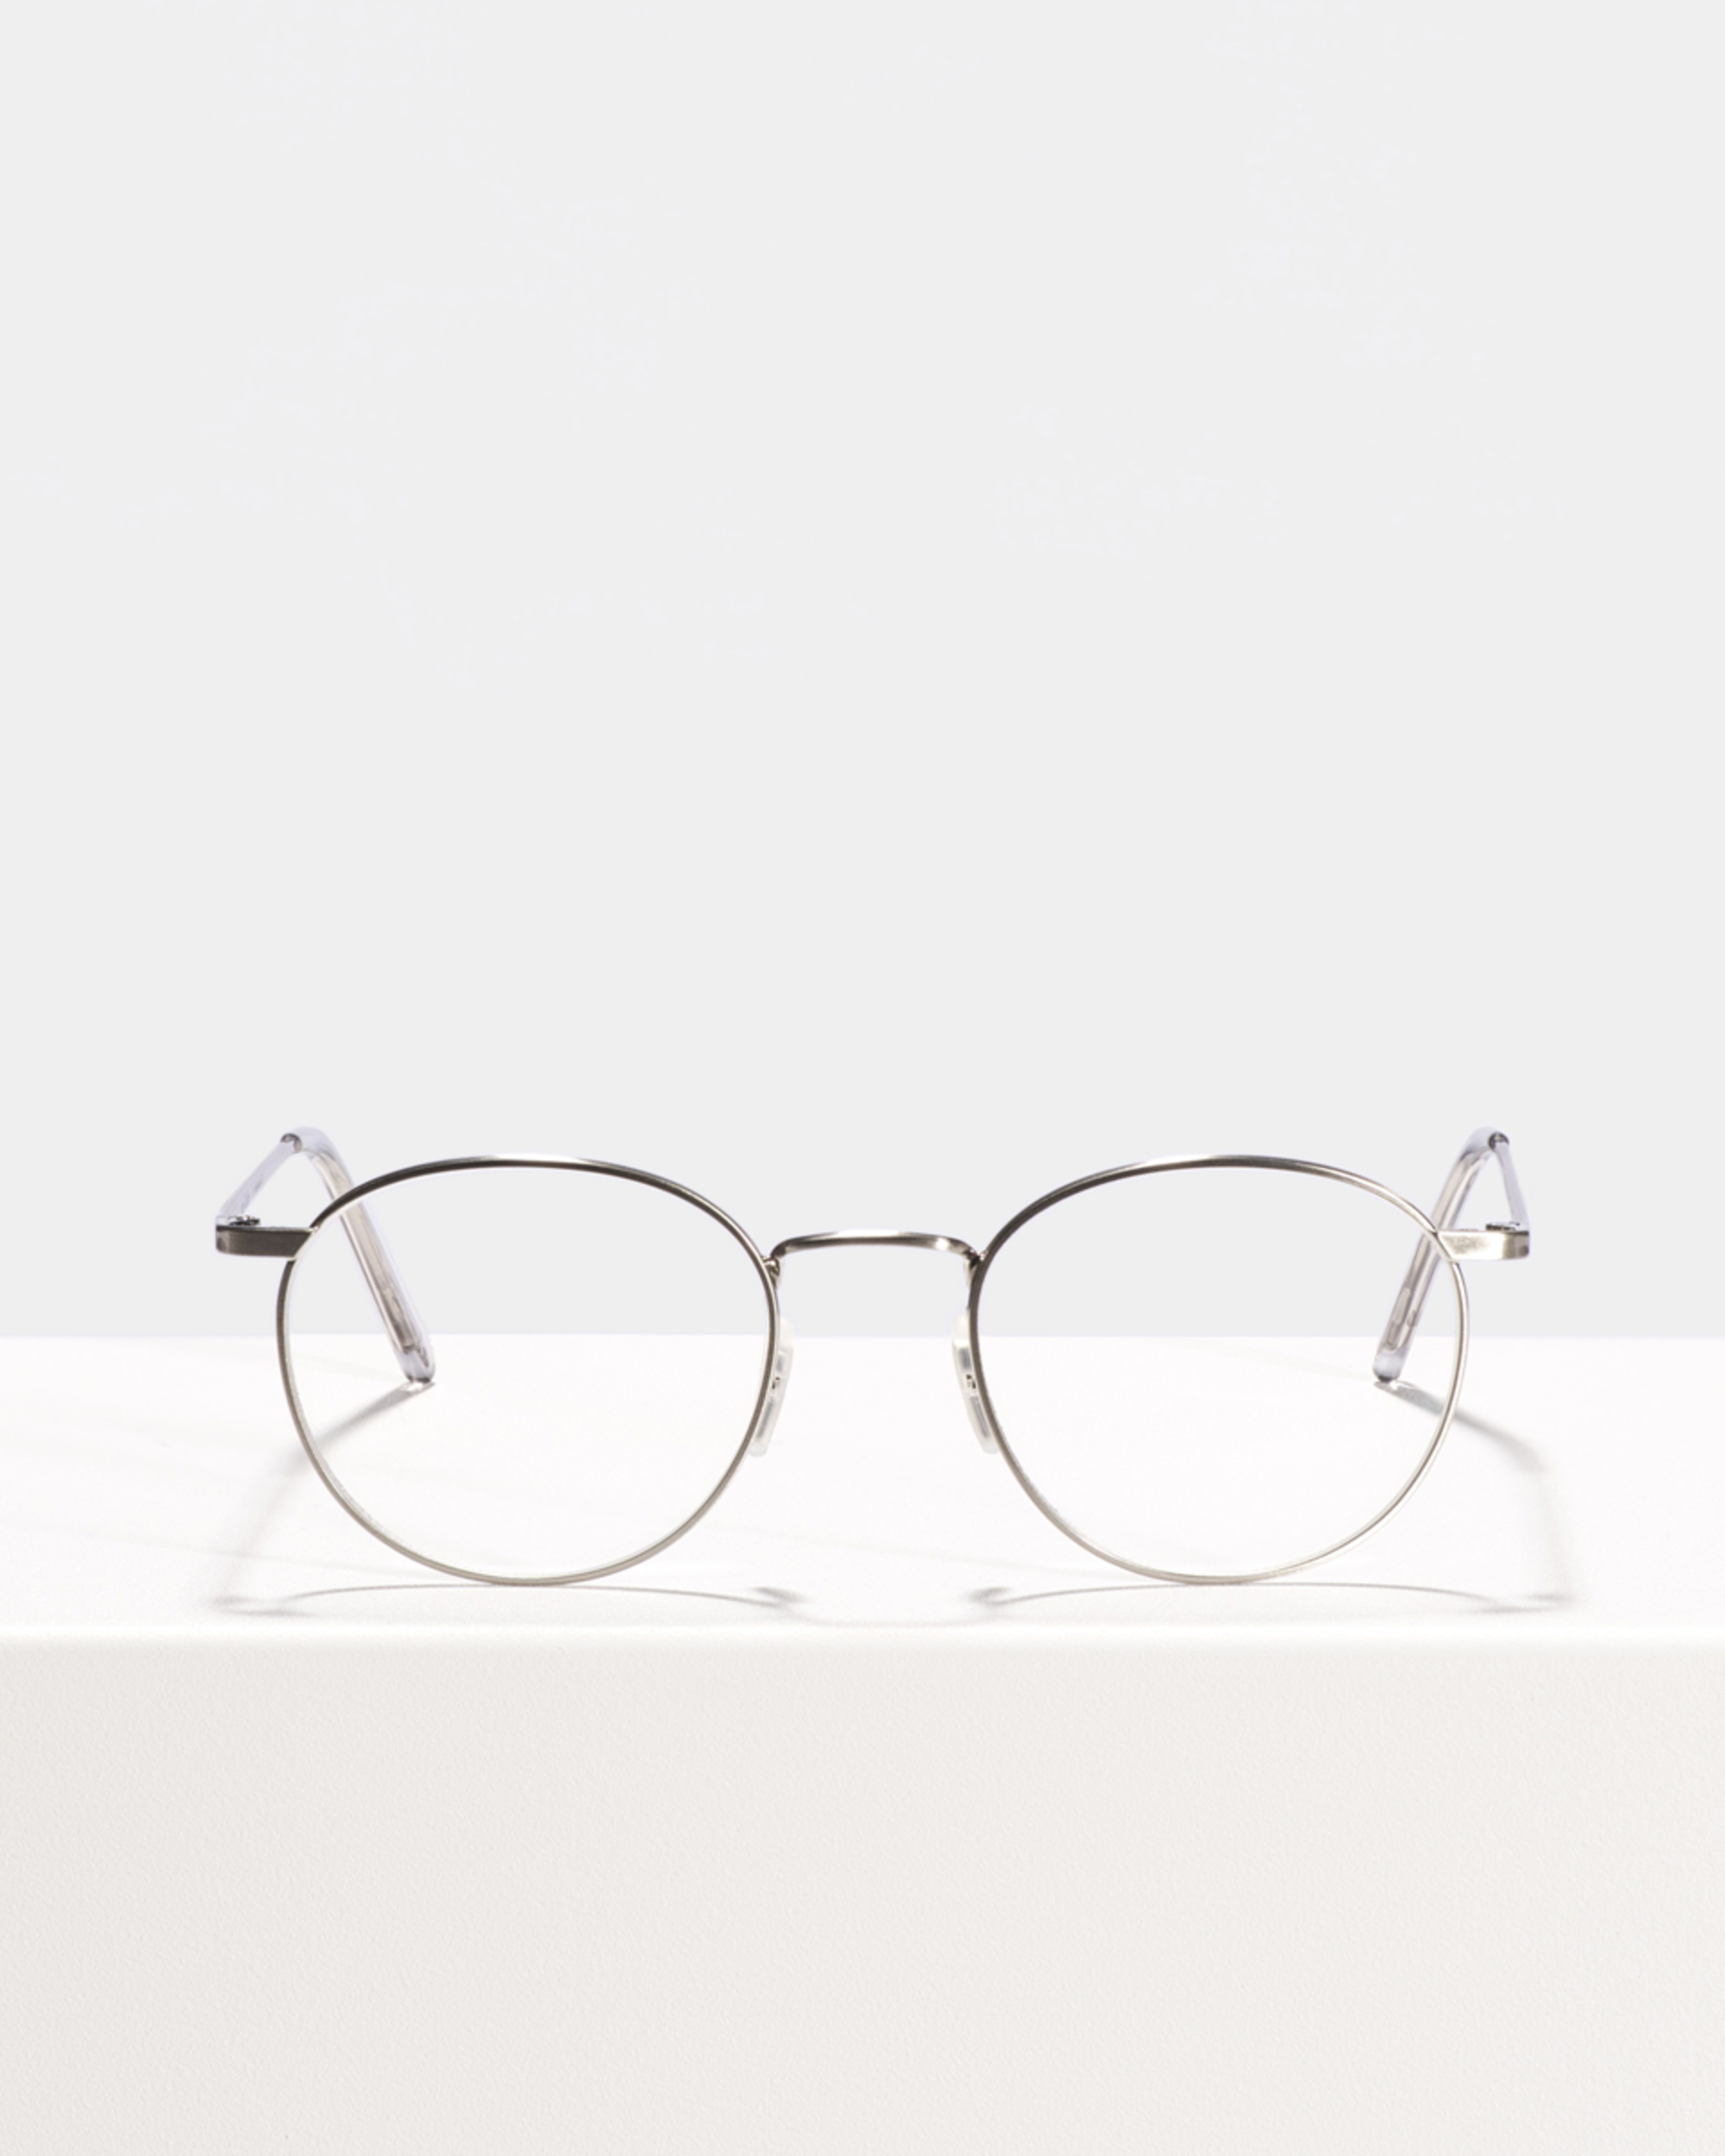 Ace & Tate Glasses | rond metaal in Zilver